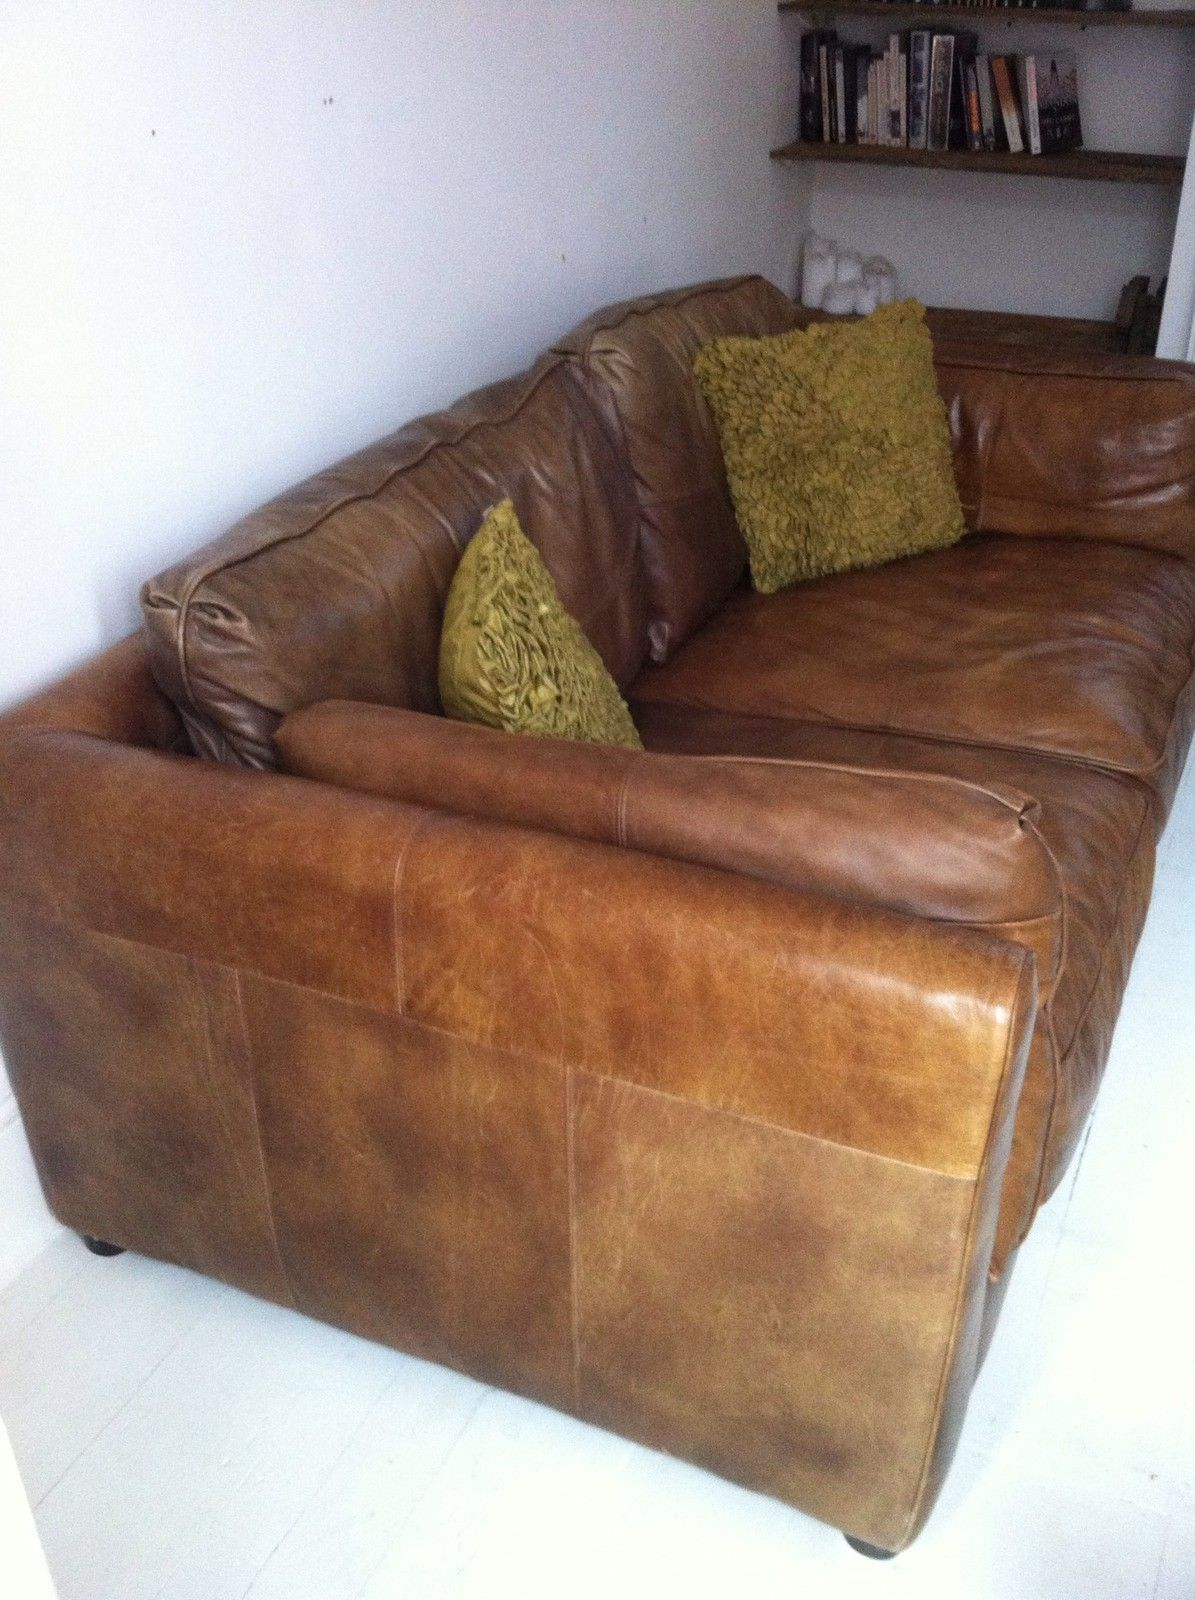 Vintage antique style tan leather sofa Best Tan leather  : d3751740b12d646af75ce029f56c58b2 from www.pinterest.com size 1195 x 1600 jpeg 398kB